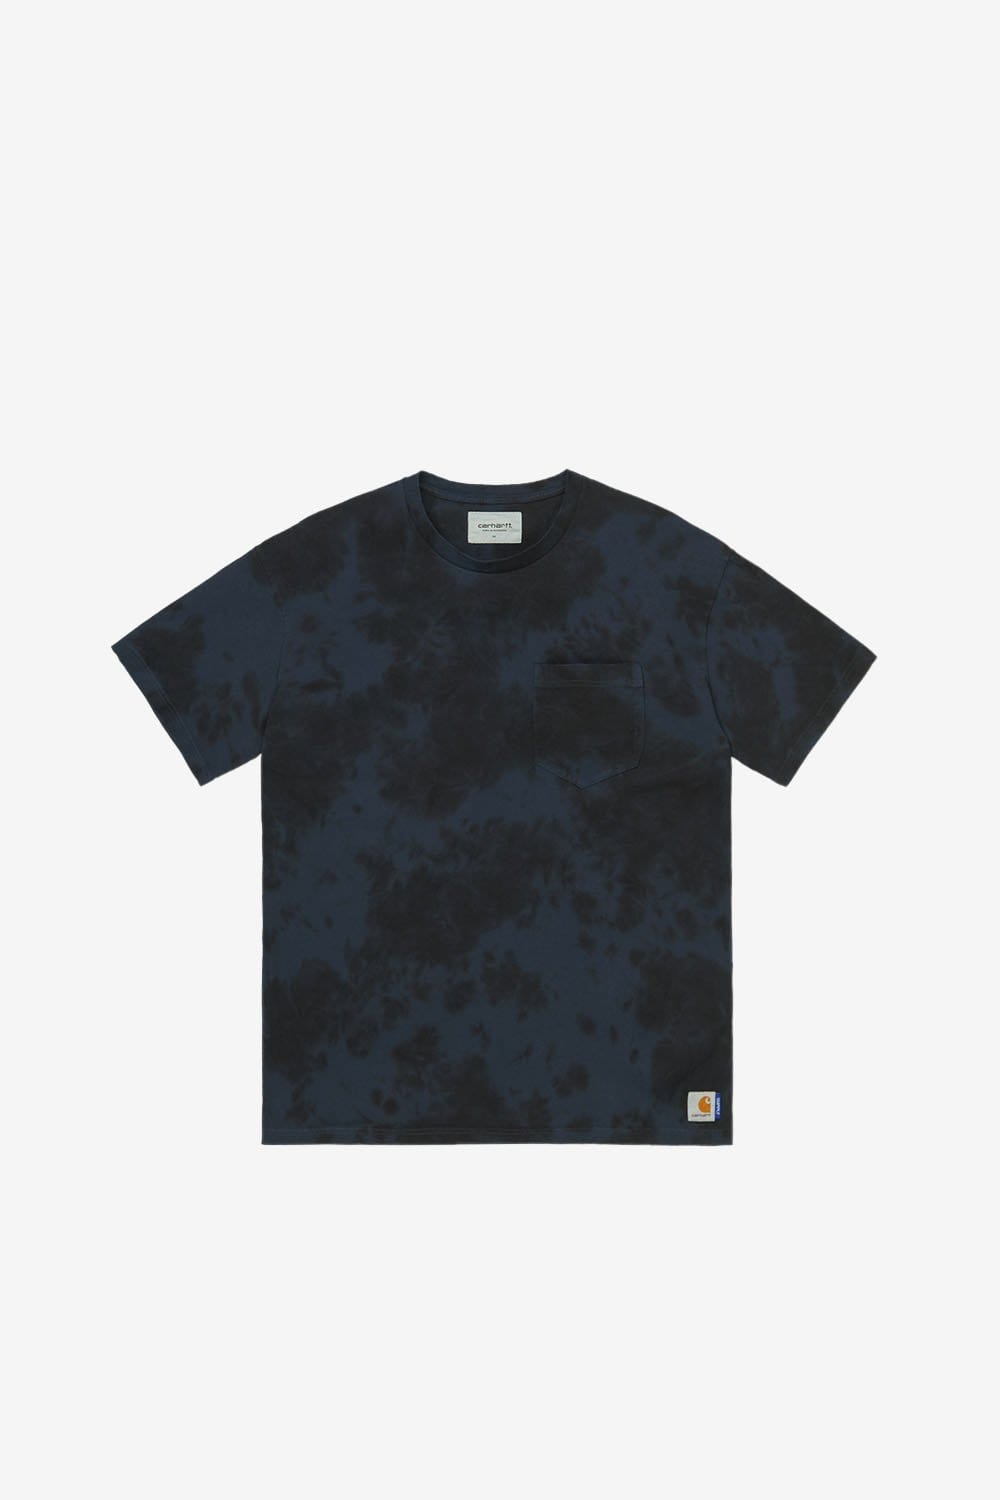 Carhartt WIP Apparel Supply S/S Pocket Loose T-shirt (Tie Dyed)